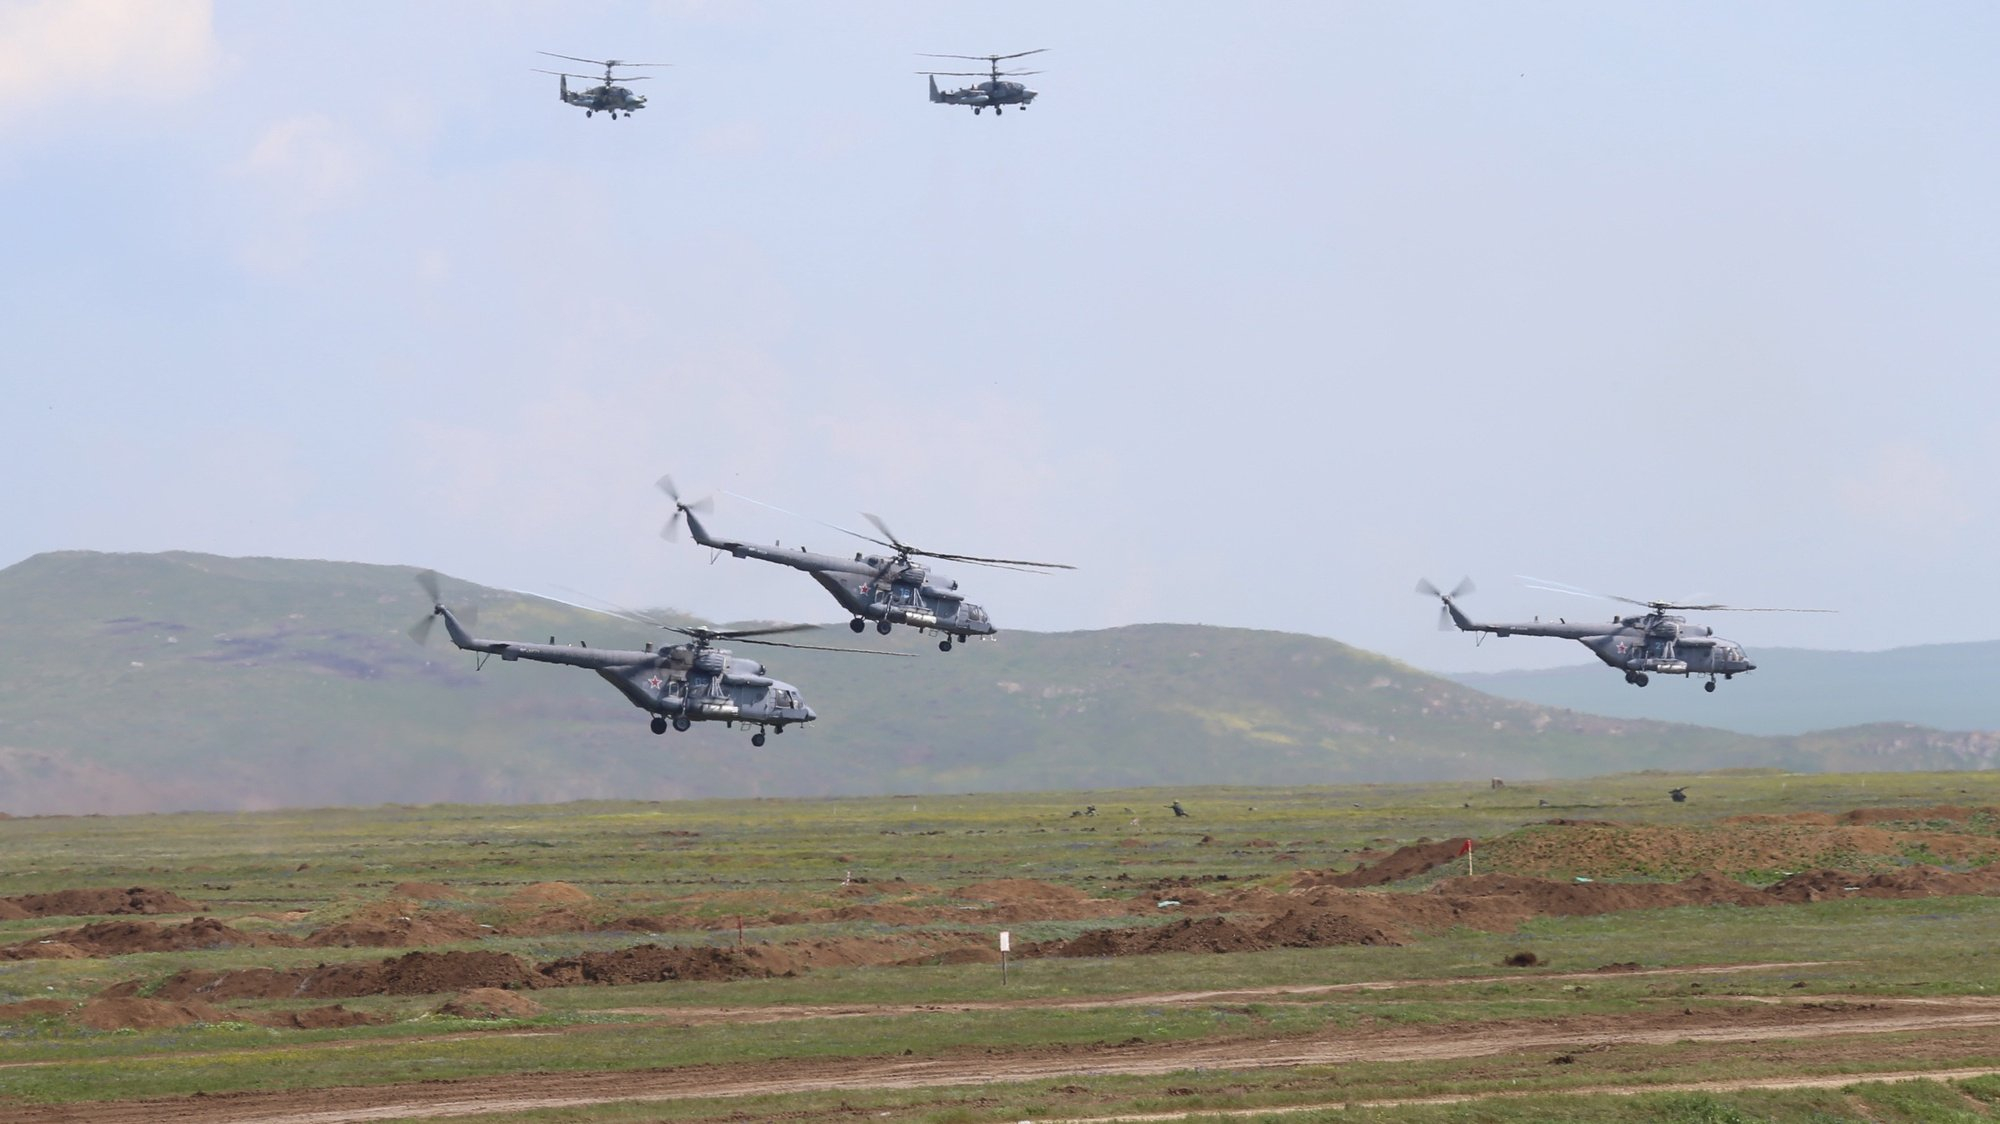 epa09152960 A handout photo made available by the press service of the Russian Defence Ministry shows Russian military helicopters during the main stage of the mixed exercise of the Russian Armed Forces at the at Opuk range  in Crimea, 22 April 2021. Units of the combined arms army, air force and air defen–e formations, warships and ships, military units of the coastal forces of the Black Sea Fleet, part of the forces of the Caspian Flotilla and airborne units take part in the military exercises at the Opuk training ground.  EPA/VADIM SAVITSKY / RUSSIAN DEFENCE MINISTRY / HANDOUT MANDATORY CREDIT / HANDOUT EDITORIAL USE ONLY/NO SALES